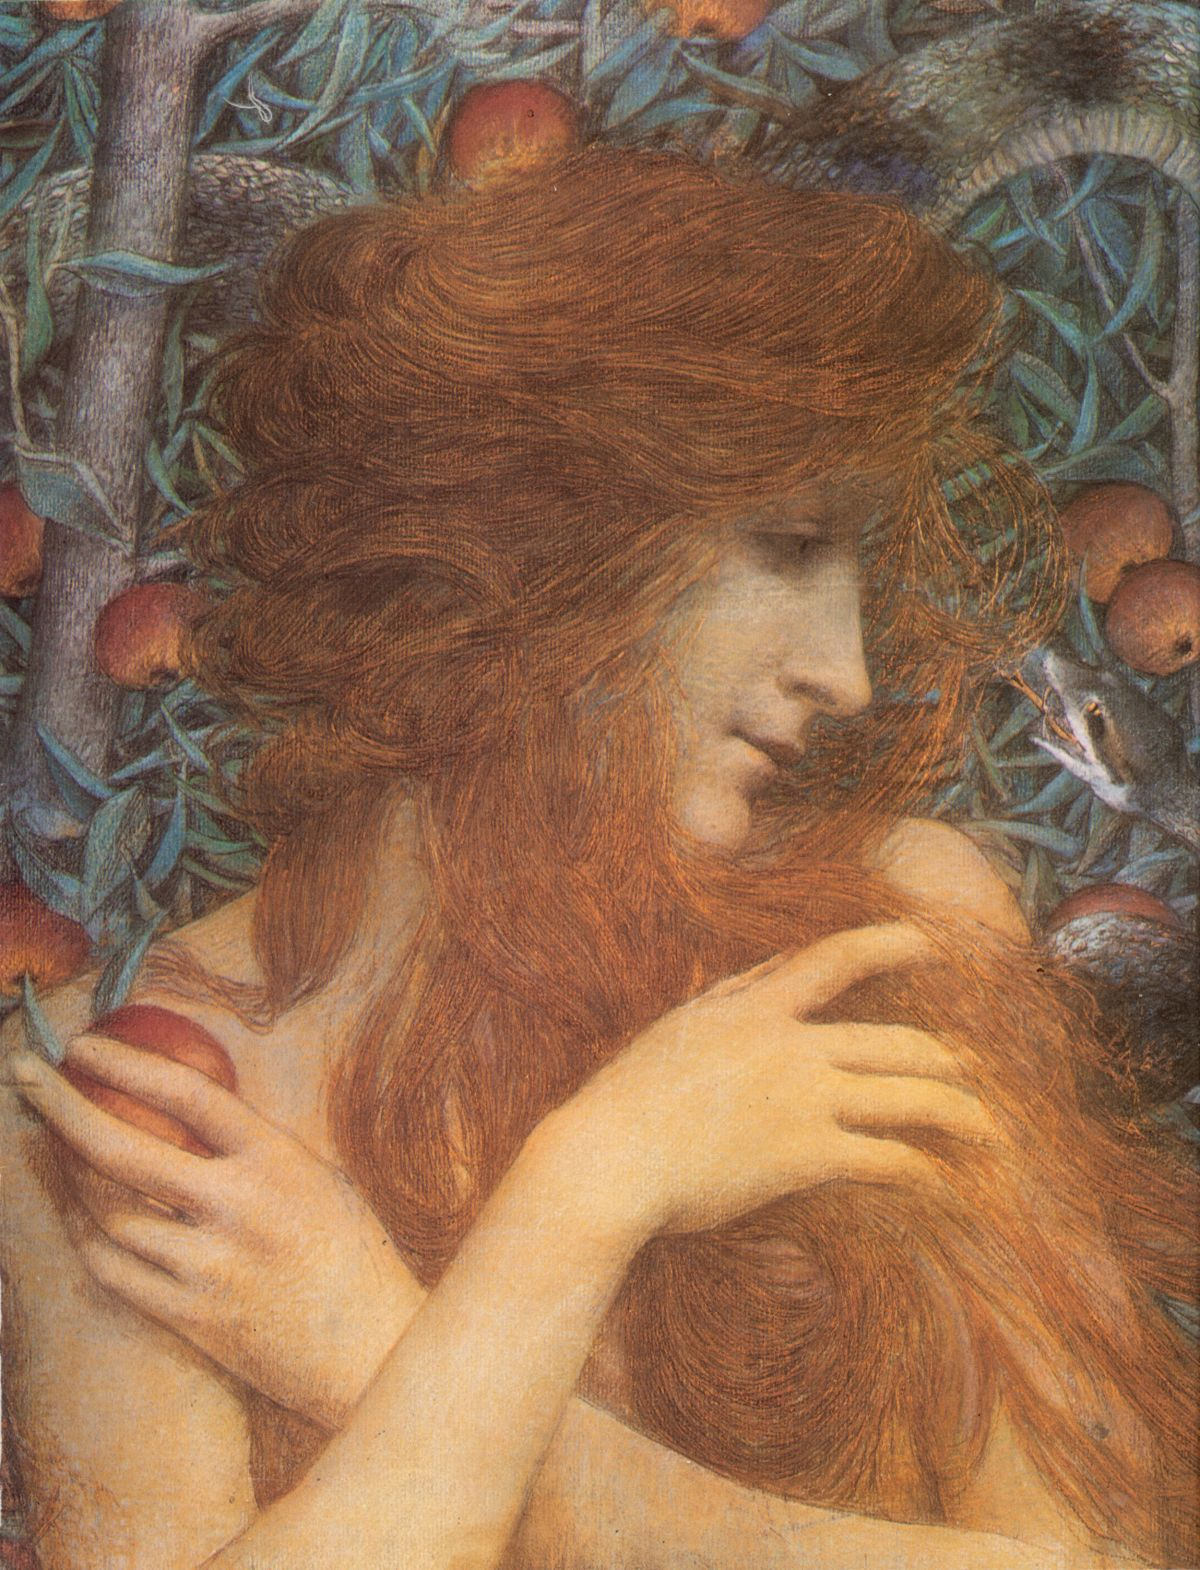 Eve by Lucien Levy Dhurmer